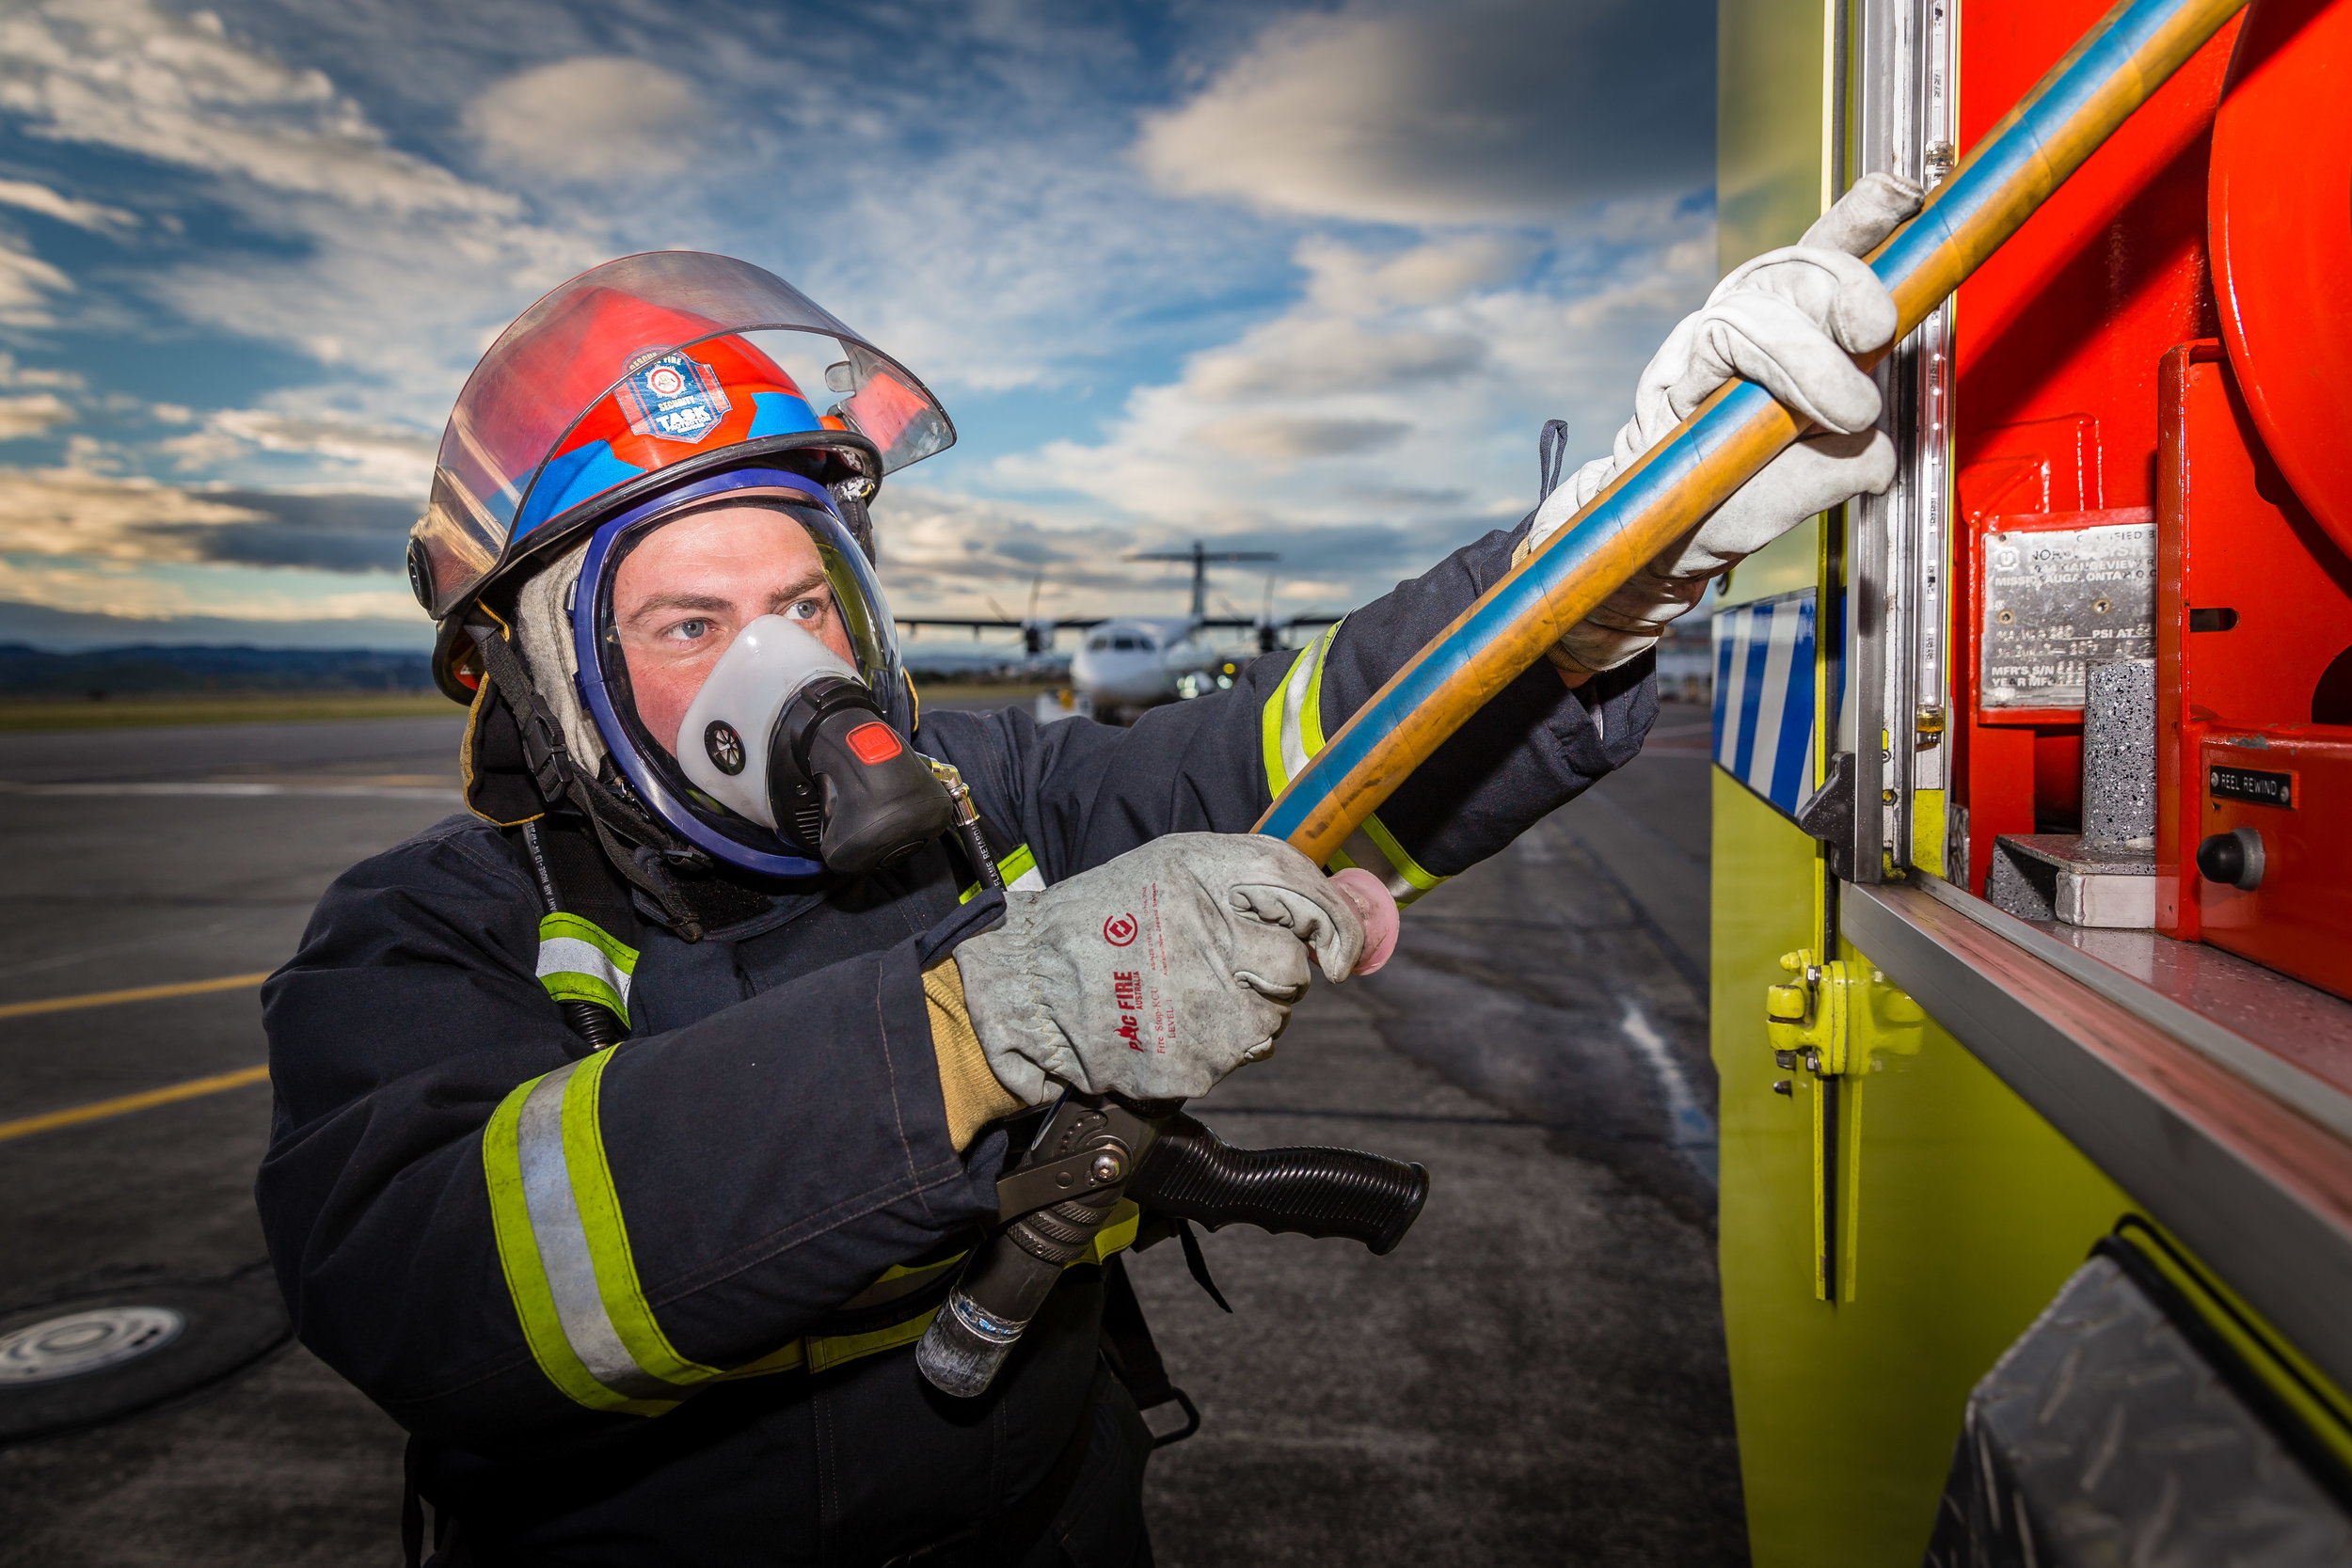 Airport Fire & Emergency